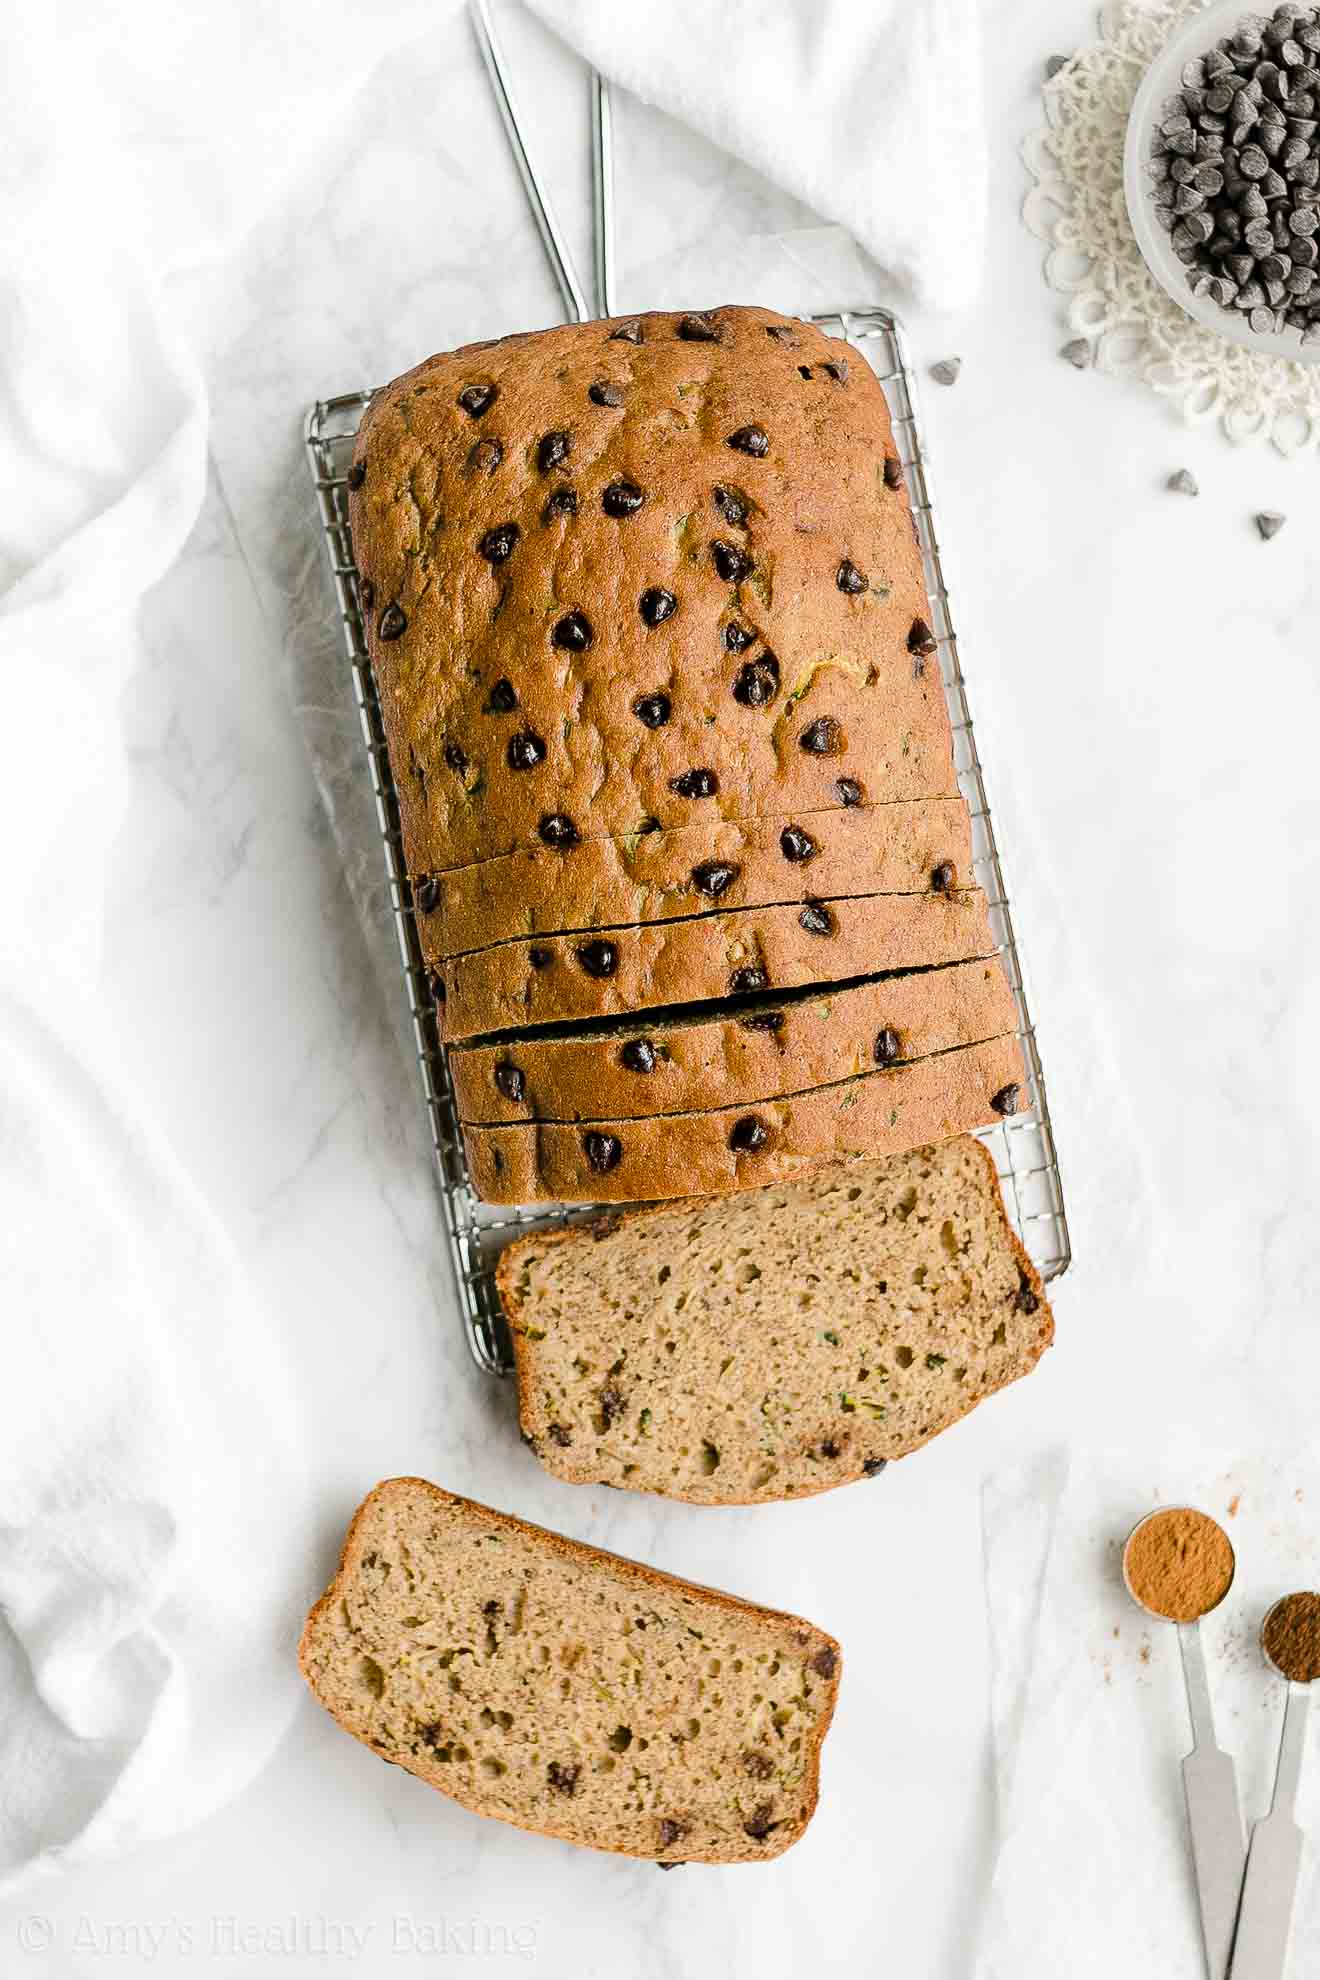 Easy Healthy Low Calorie Moist Chocolate Chip Zucchini Banana Bread